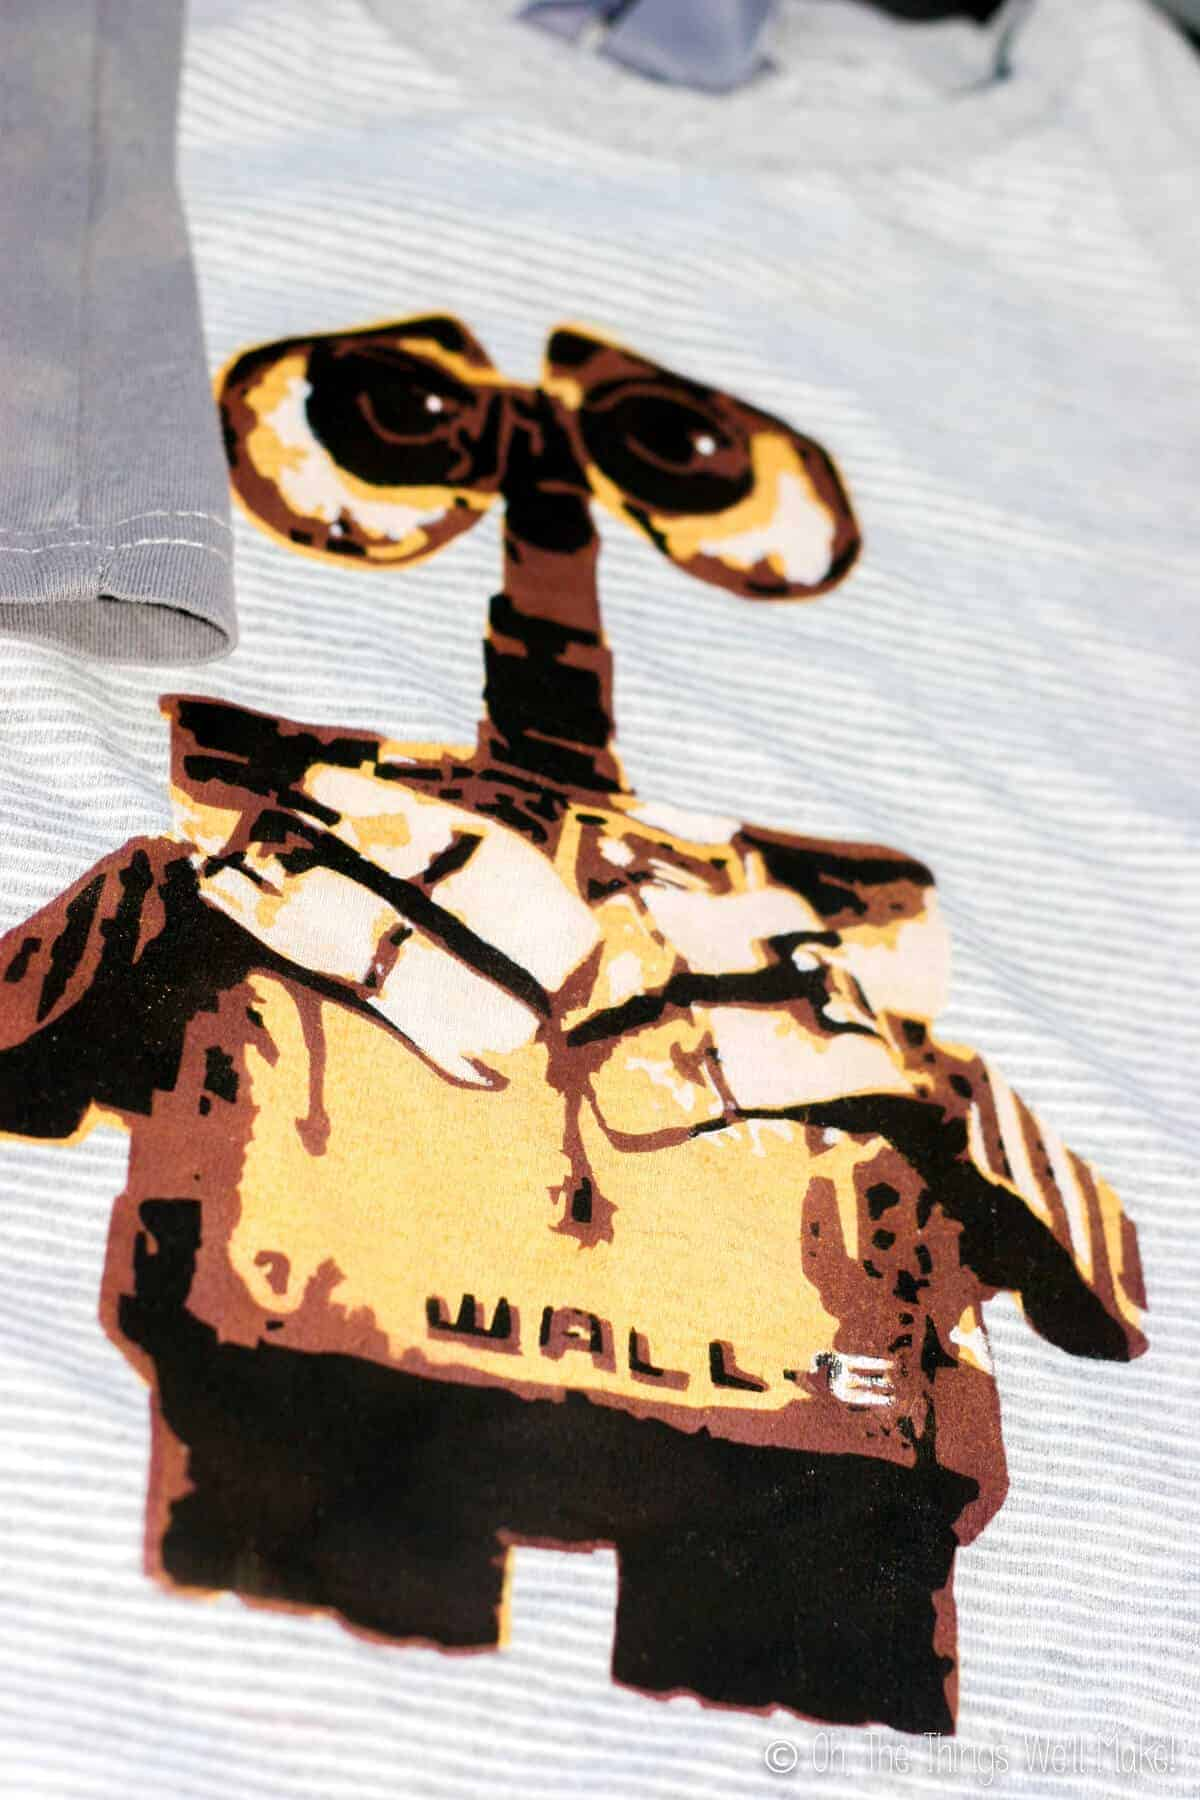 finished Wall-E stencil design on t-shirt